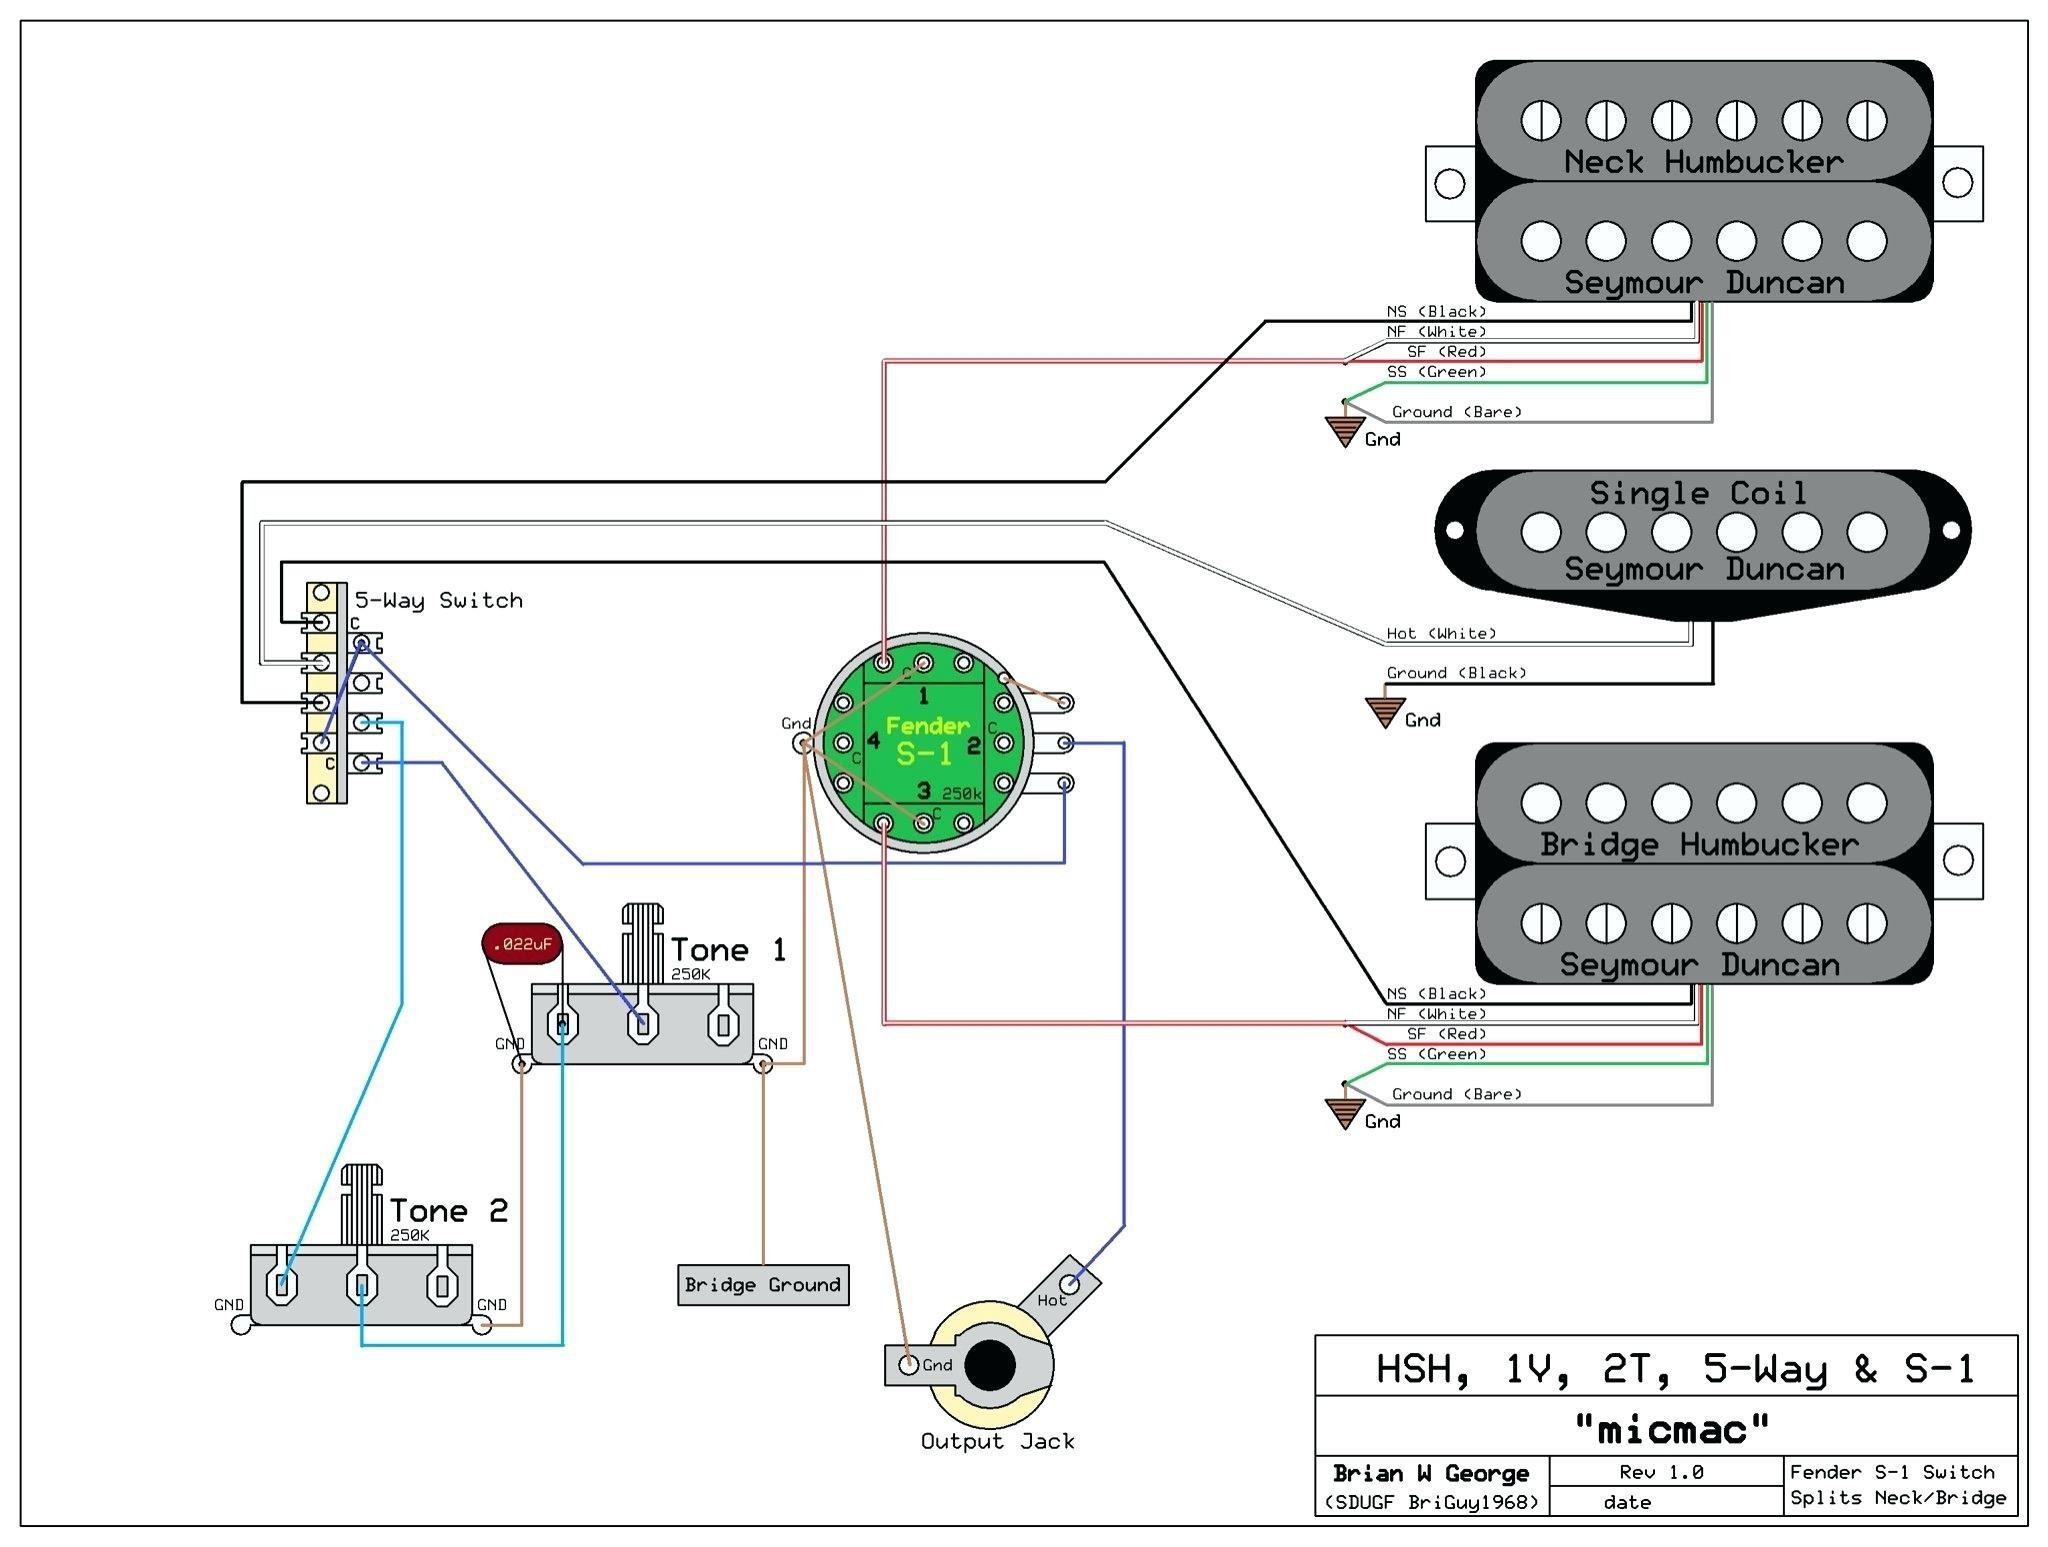 gatton telecaster wiring diagram get free image about wiring diagram rh spinnerly co